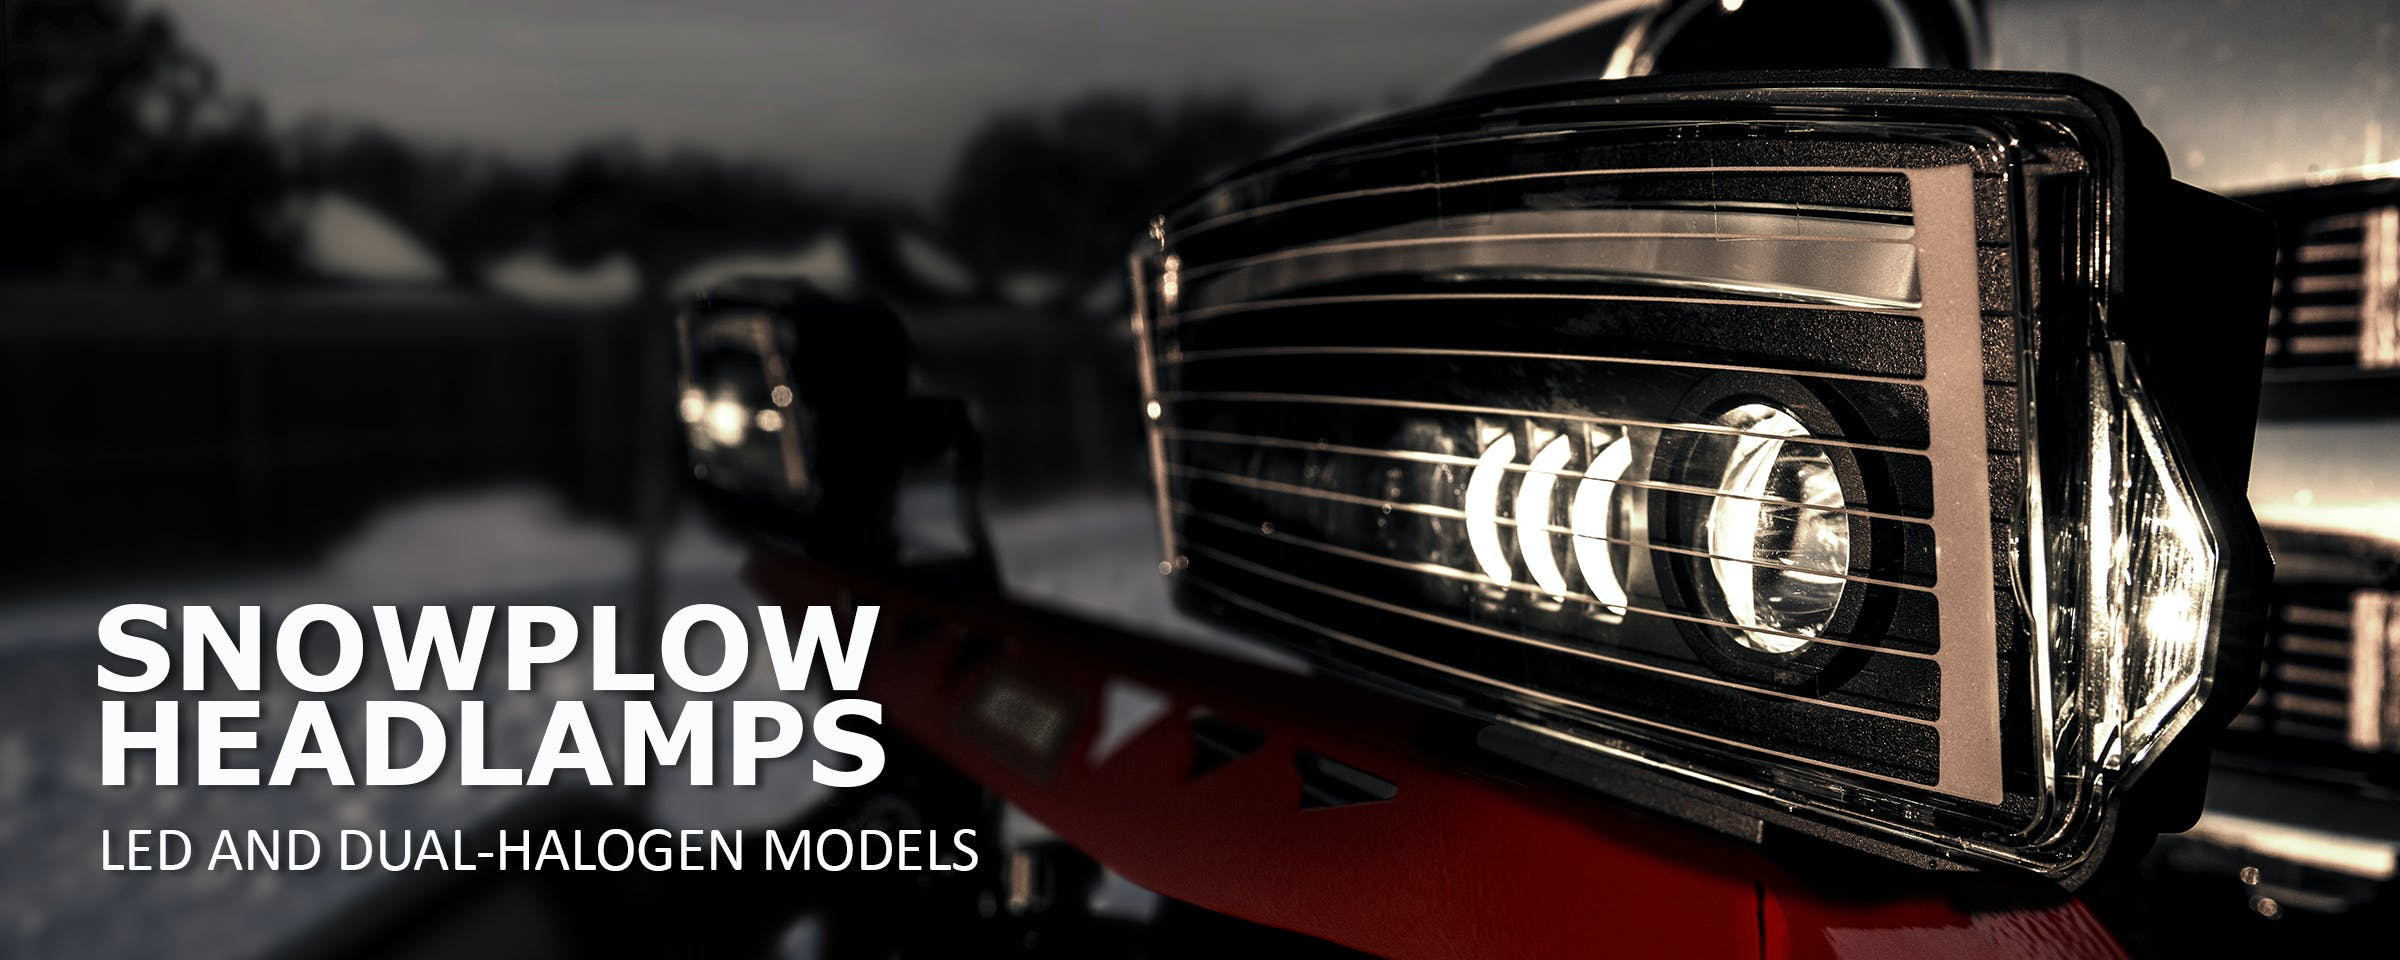 WESTERN Snowplow Headlamps